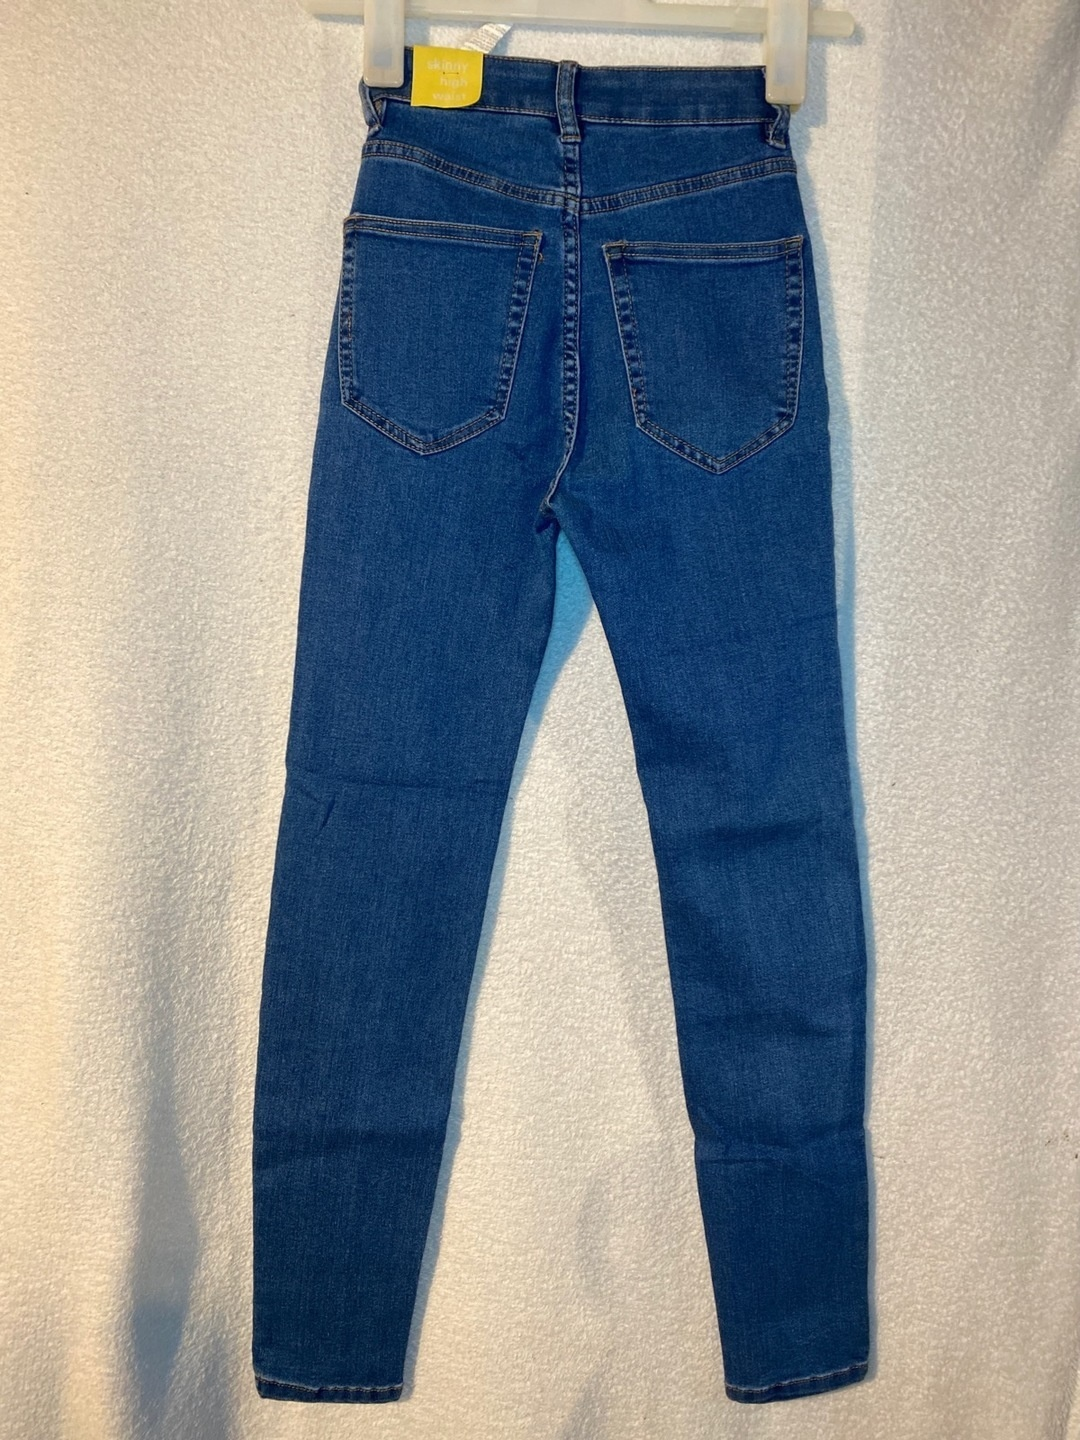 Damers bukser og jeans - PULL&BEAR photo 2